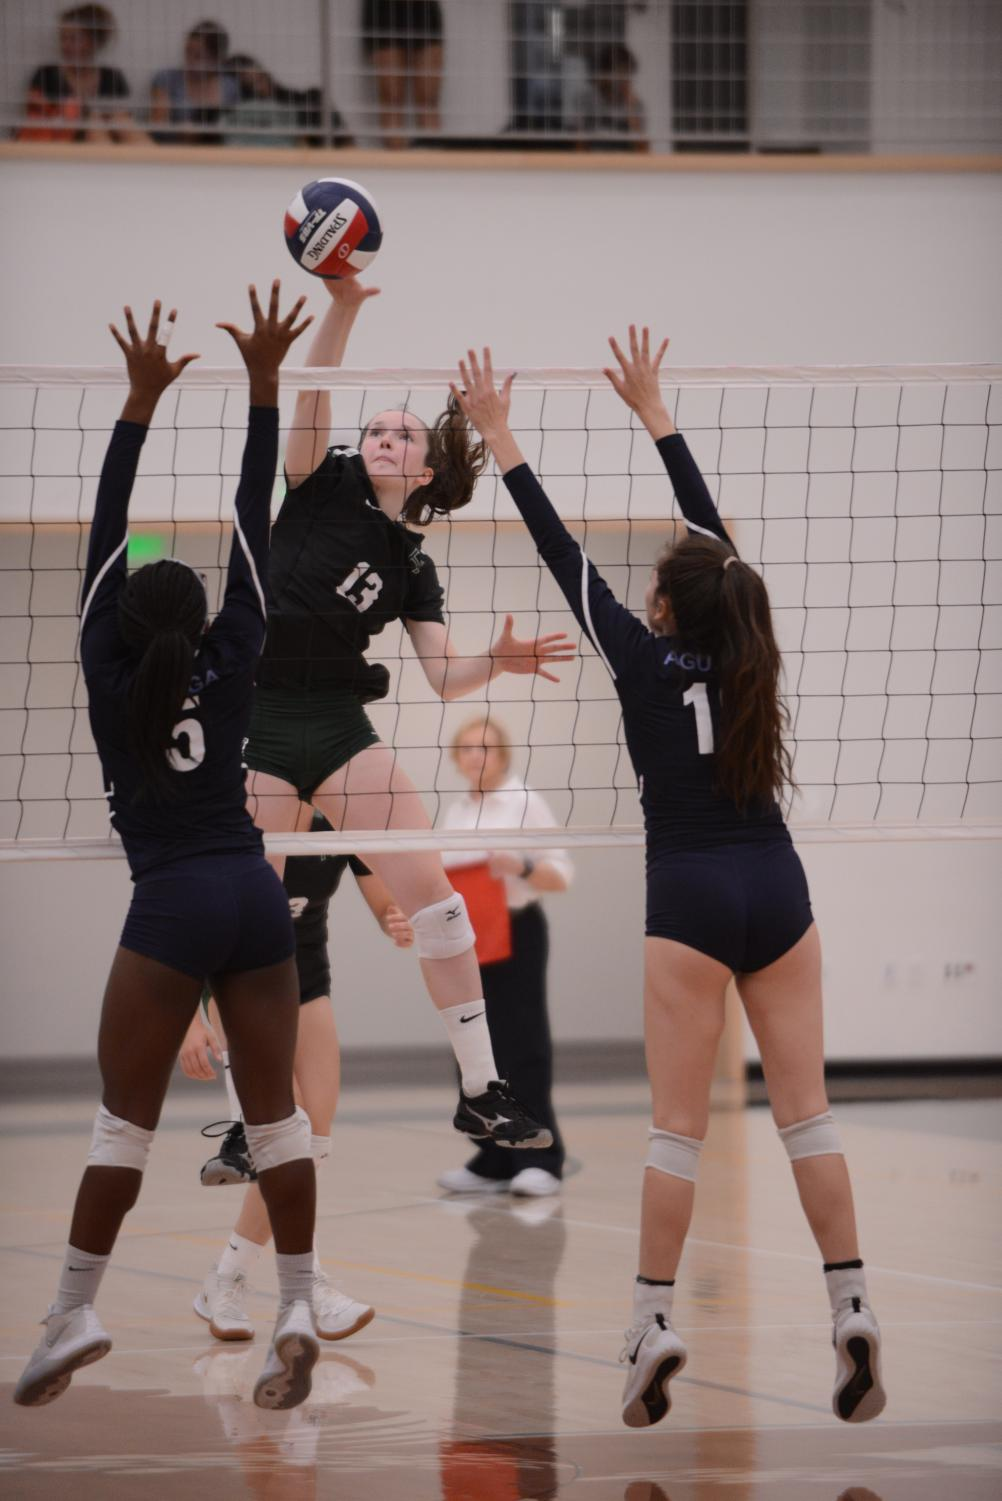 Ashley+Jazbec+%2812%29+performs+a+kill+during+the+match+against+Branham.+The+girls+next+play+against+Mercy+%28Burlingame%29+on+Wednesday.+